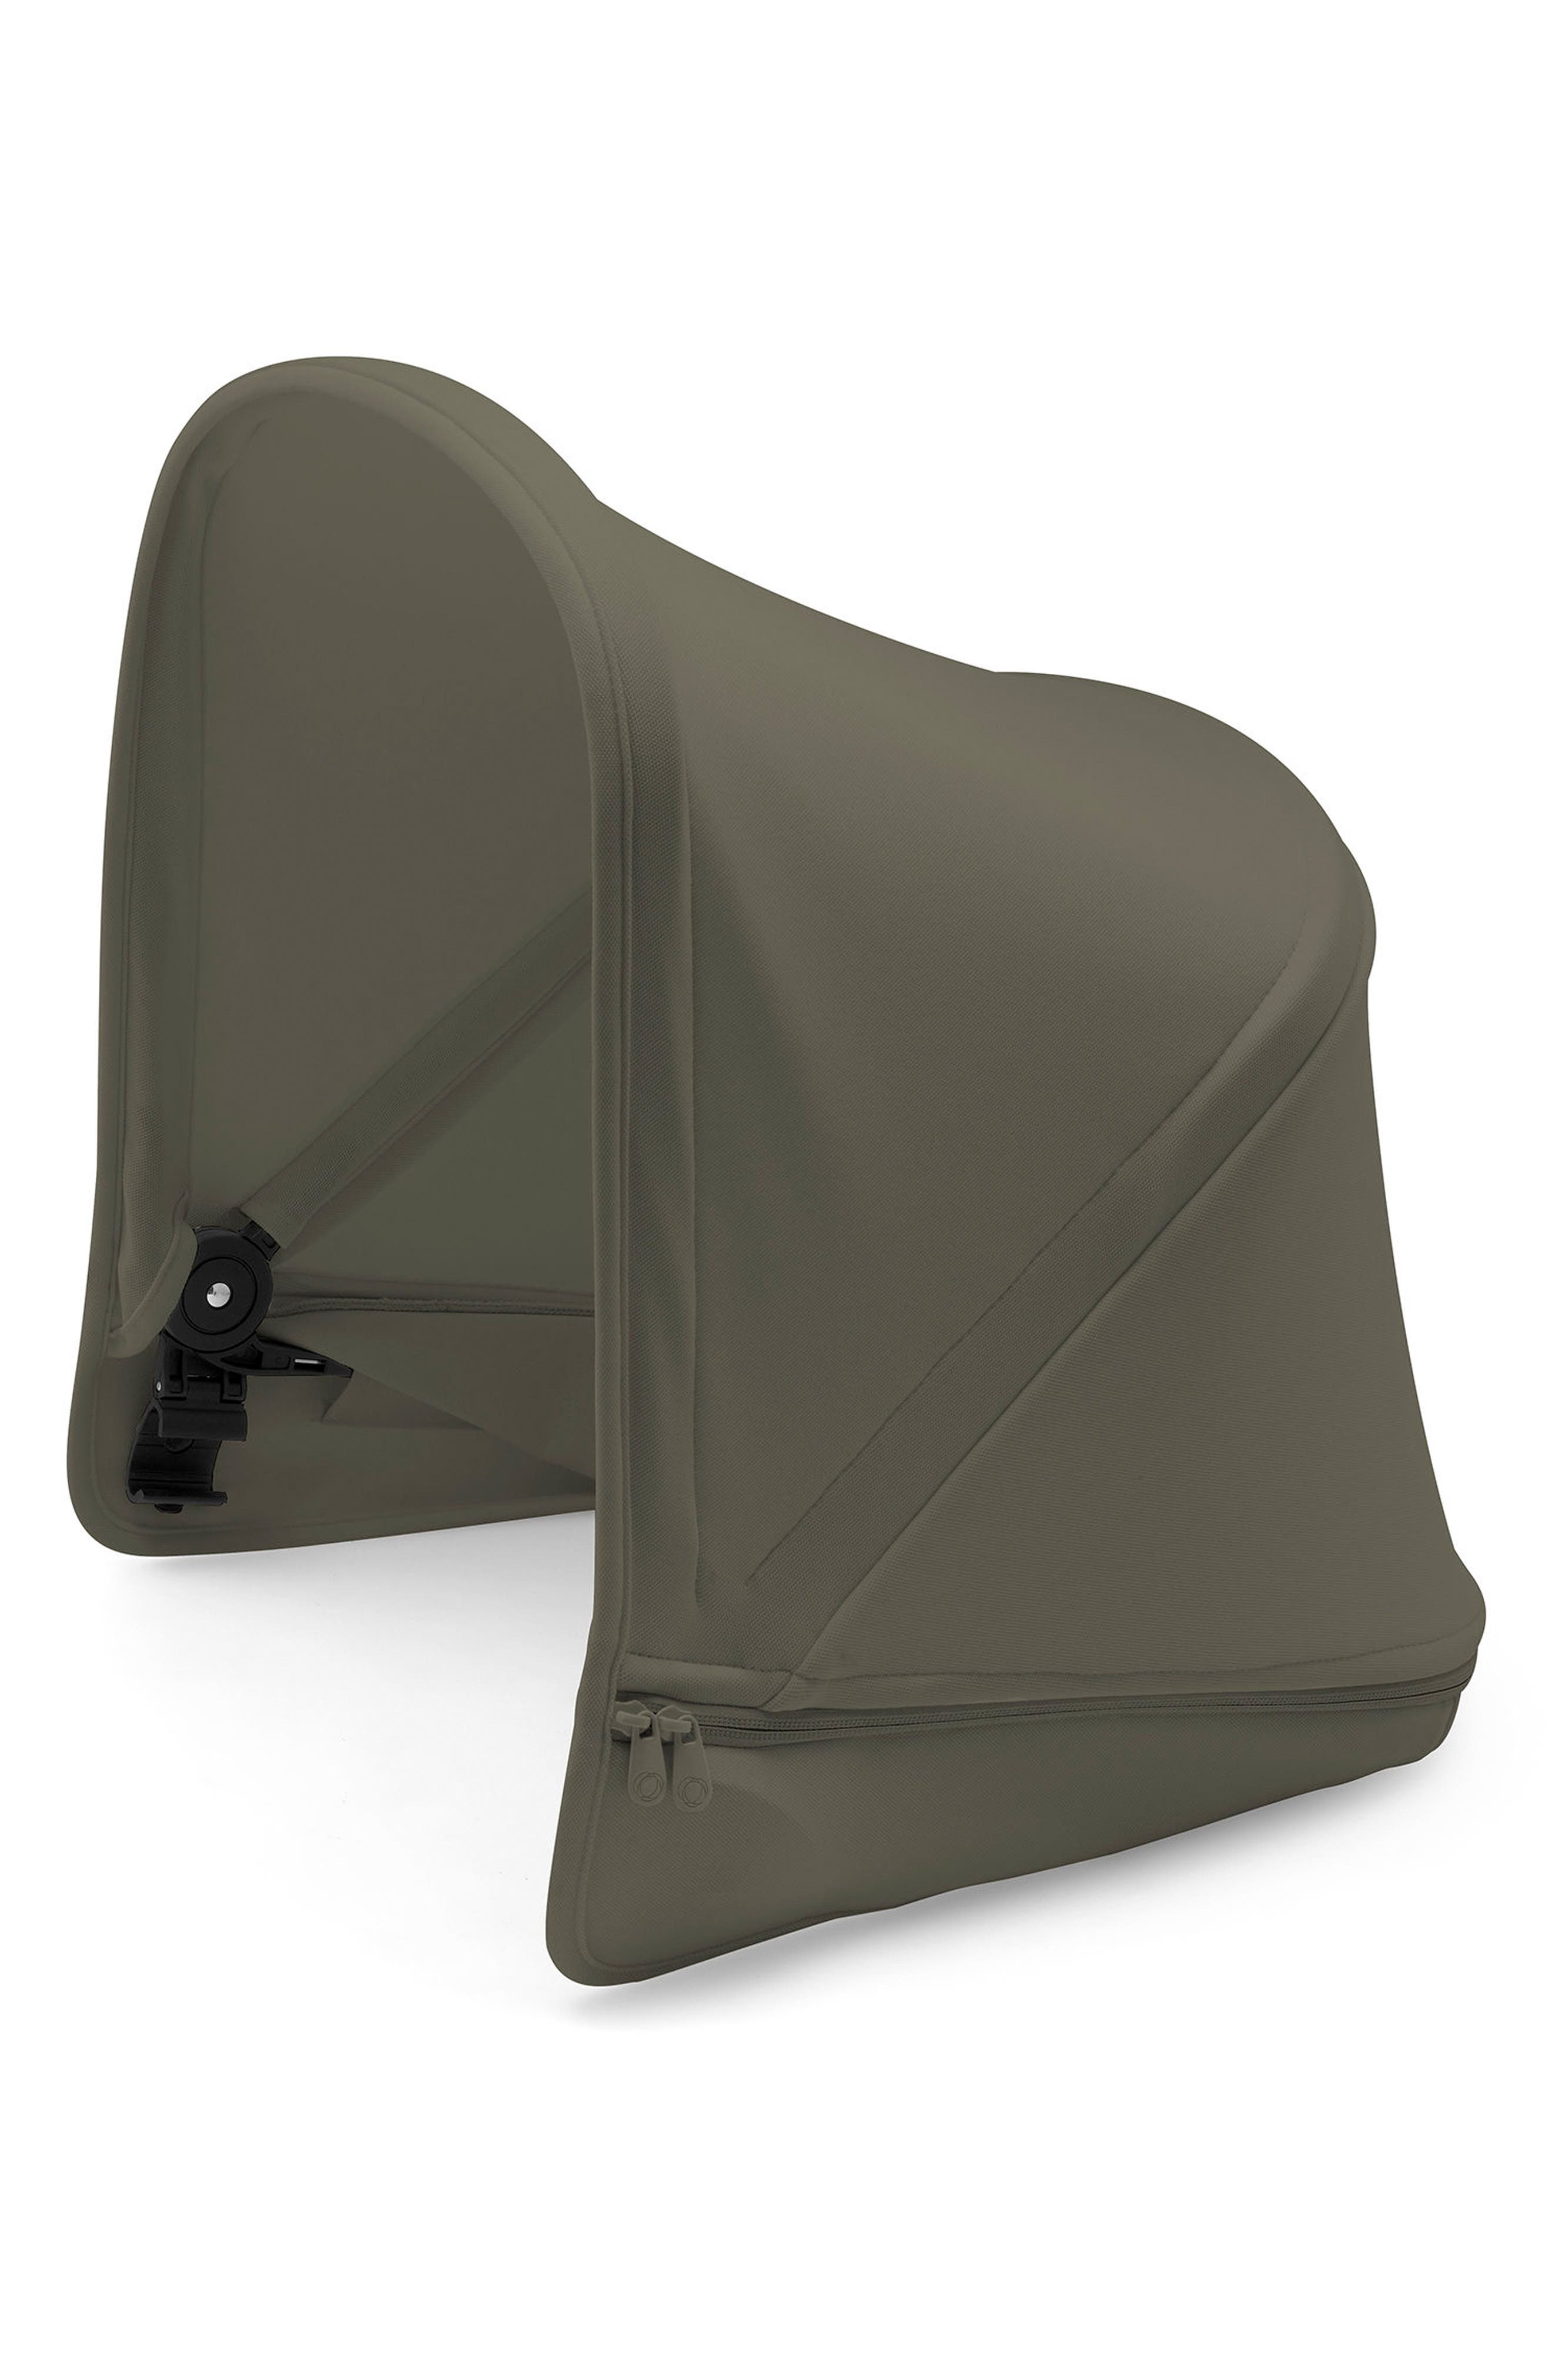 Sun Canopy for Bugaboo Donkey2 Stroller,                             Main thumbnail 1, color,                             Olive Green